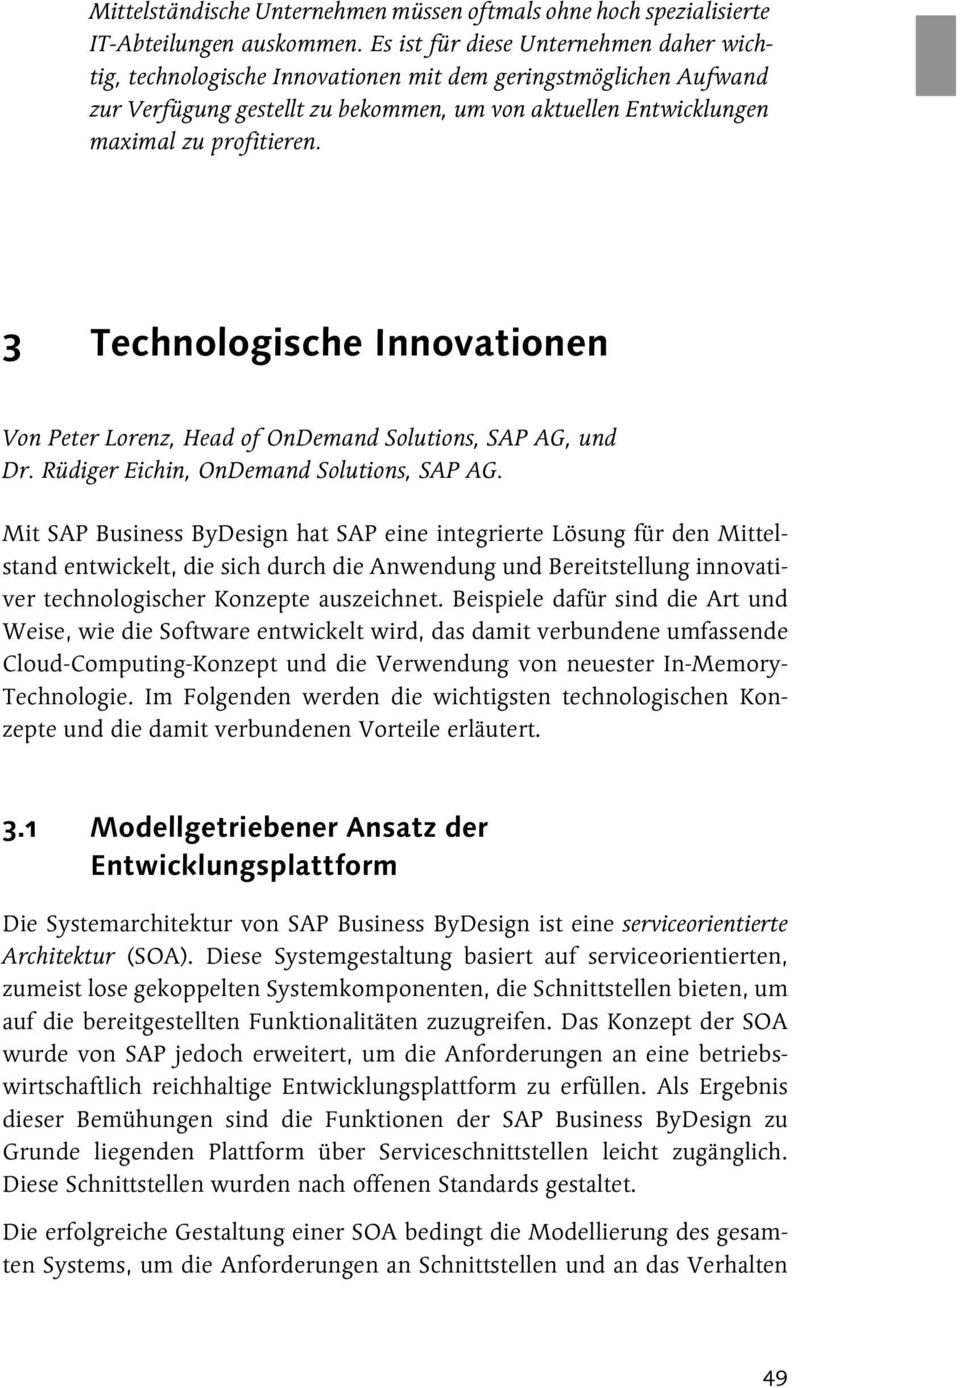 3 Technologische Innovationen Von Peter Lorenz, Head of OnDemand Solutions, SAP AG, und Dr. Rüdiger Eichin, OnDemand Solutions, SAP AG.